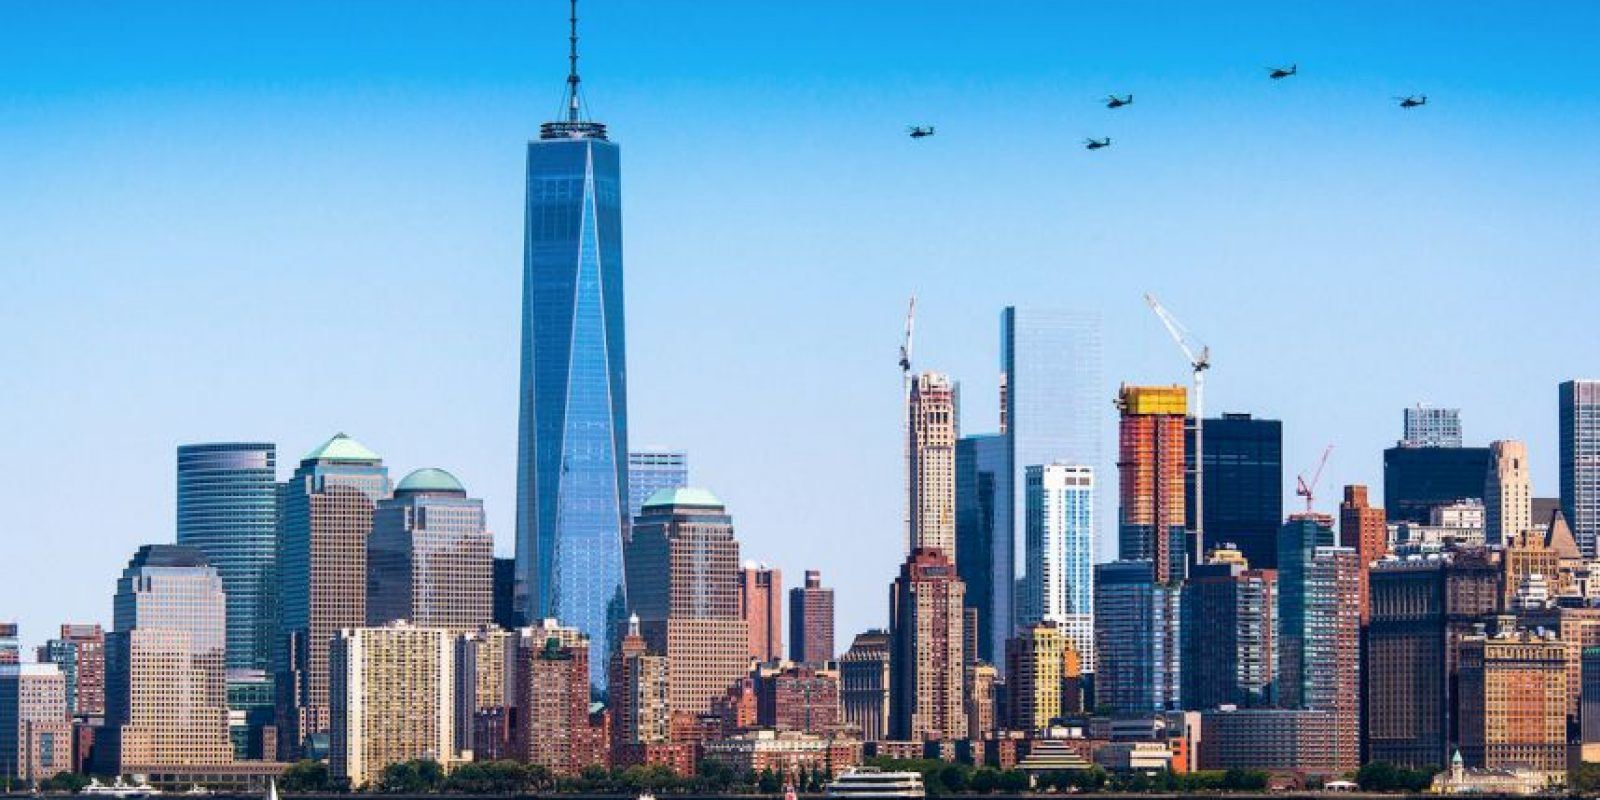 El nuevo One World Trade Center. Foto: Vía Flicker